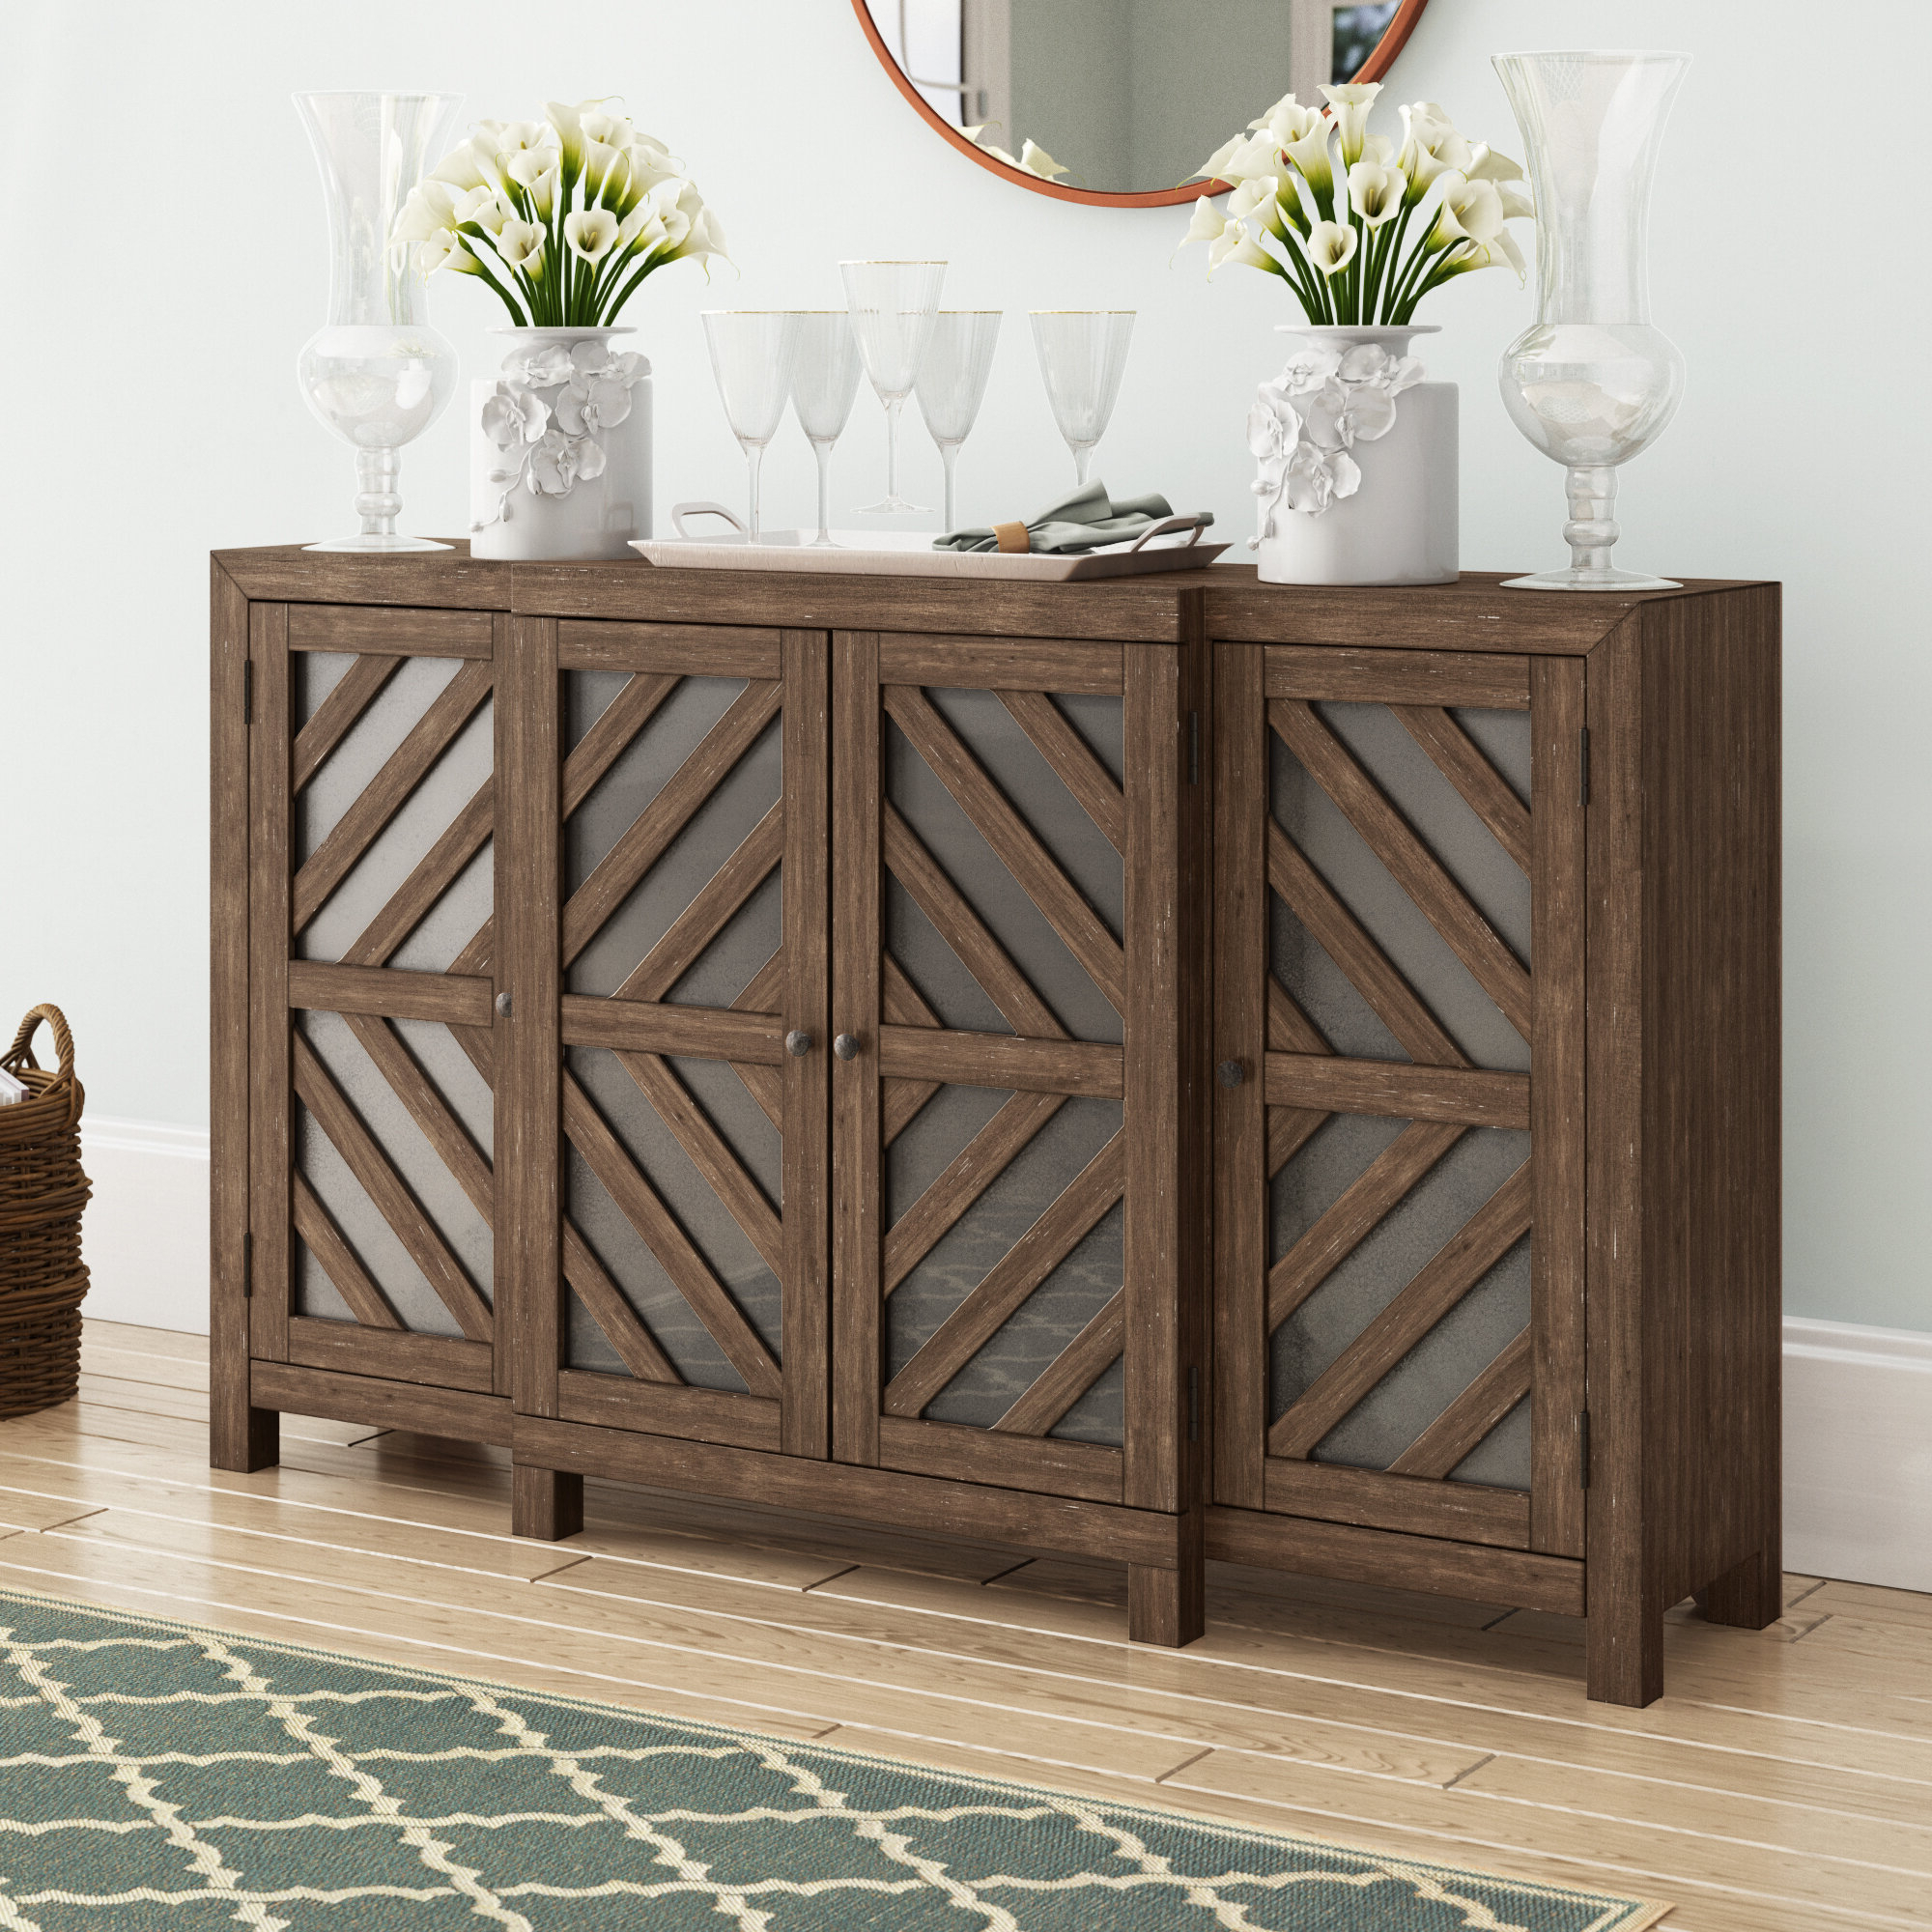 72 Inch Credenza | Wayfair Within Floral Beauty Credenzas (View 1 of 20)